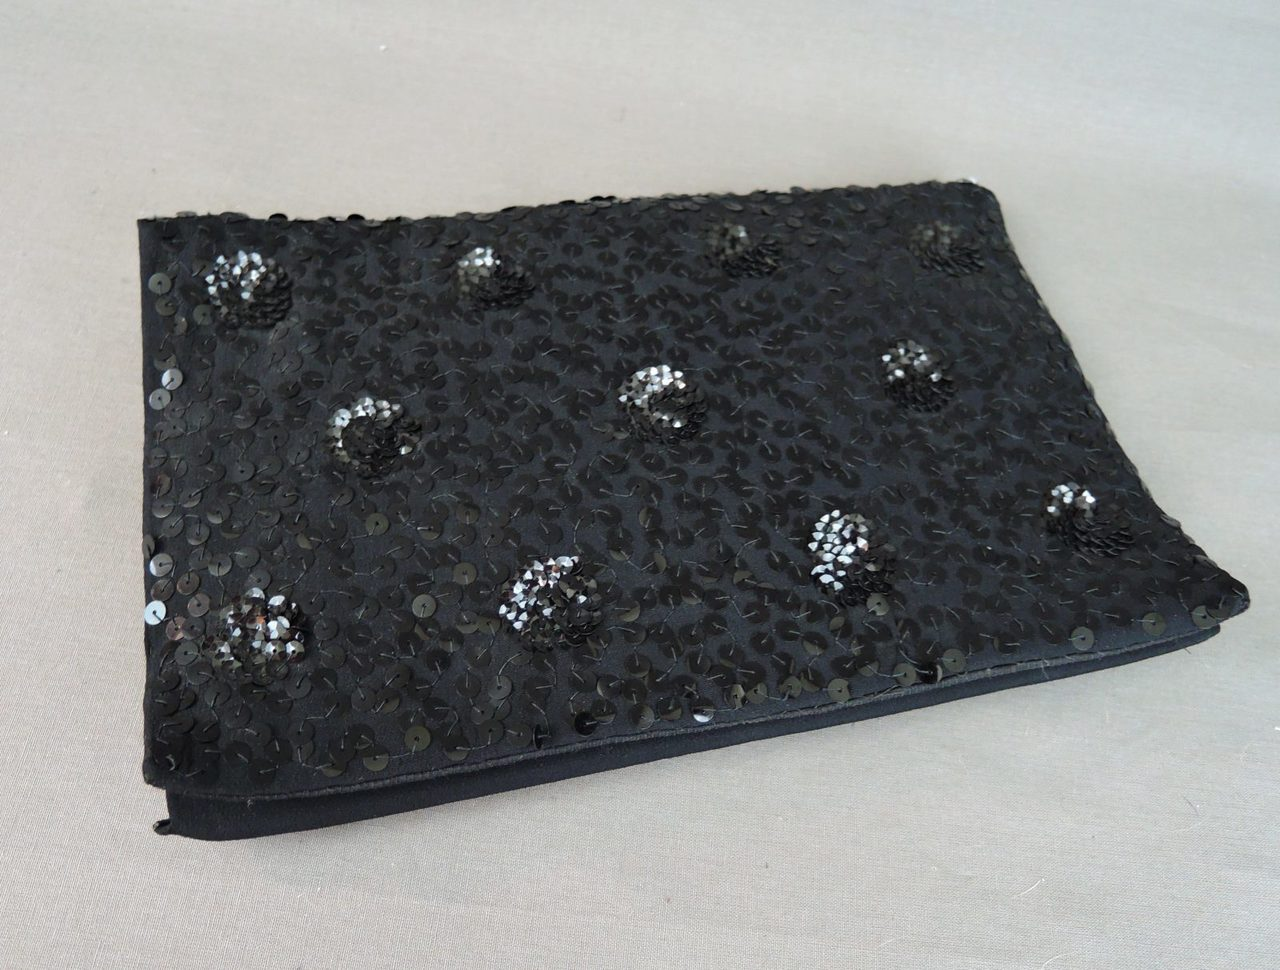 Vintage 1930s Sequin Purse & Hat, Black Evening Clutch and Skullcap set